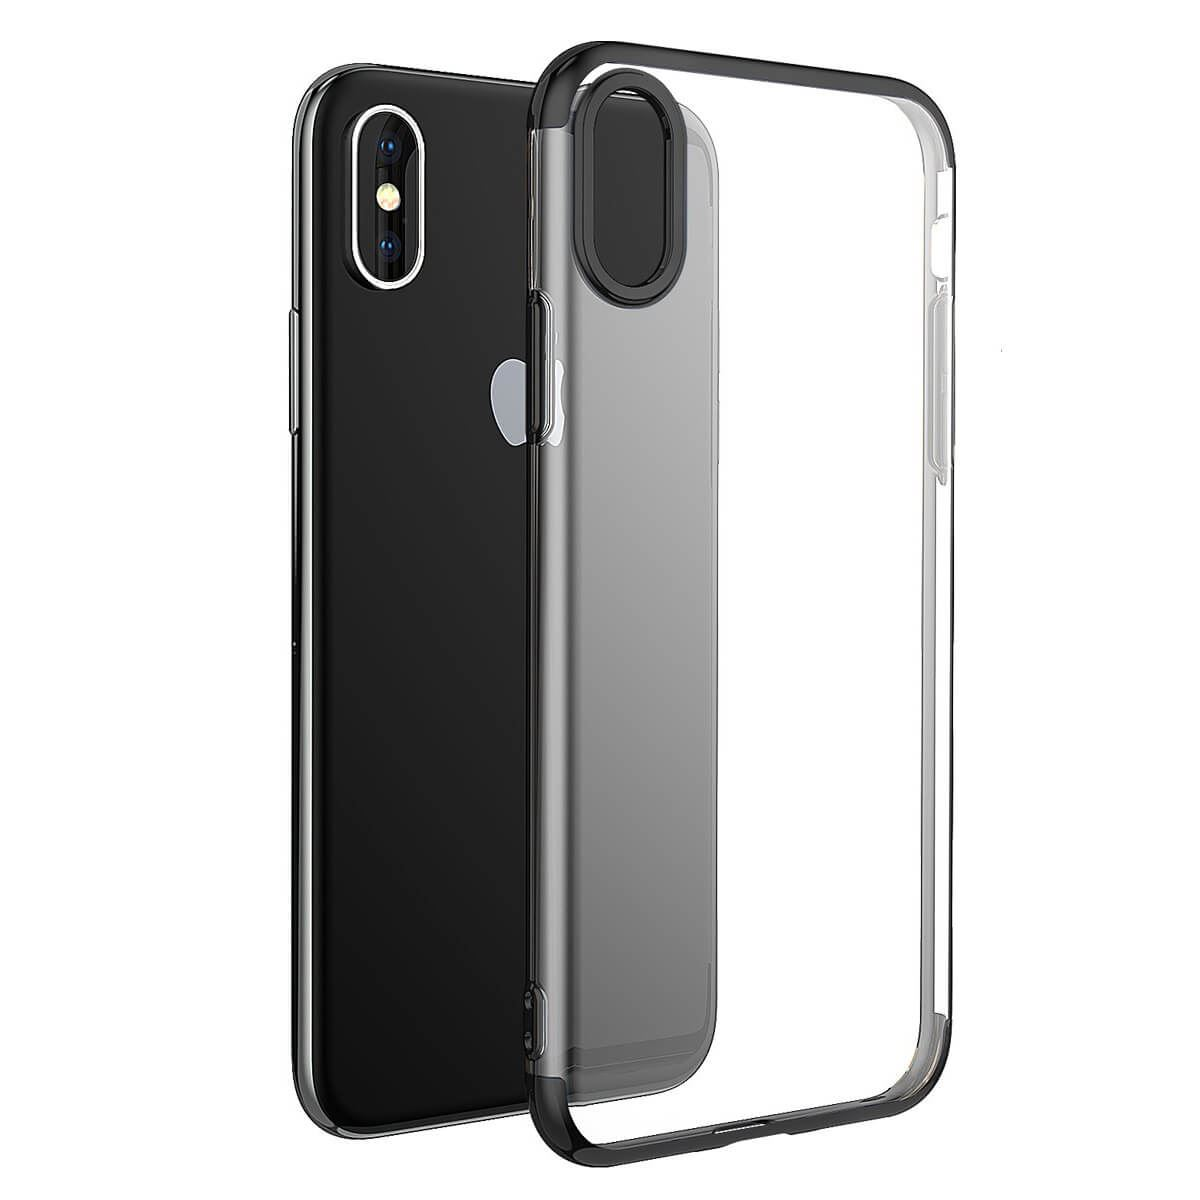 ShockProof-Silicone-Case-For-Apple-iPhone-X-8-7-6S-Plus-360-Hybrid-Cover thumbnail 4